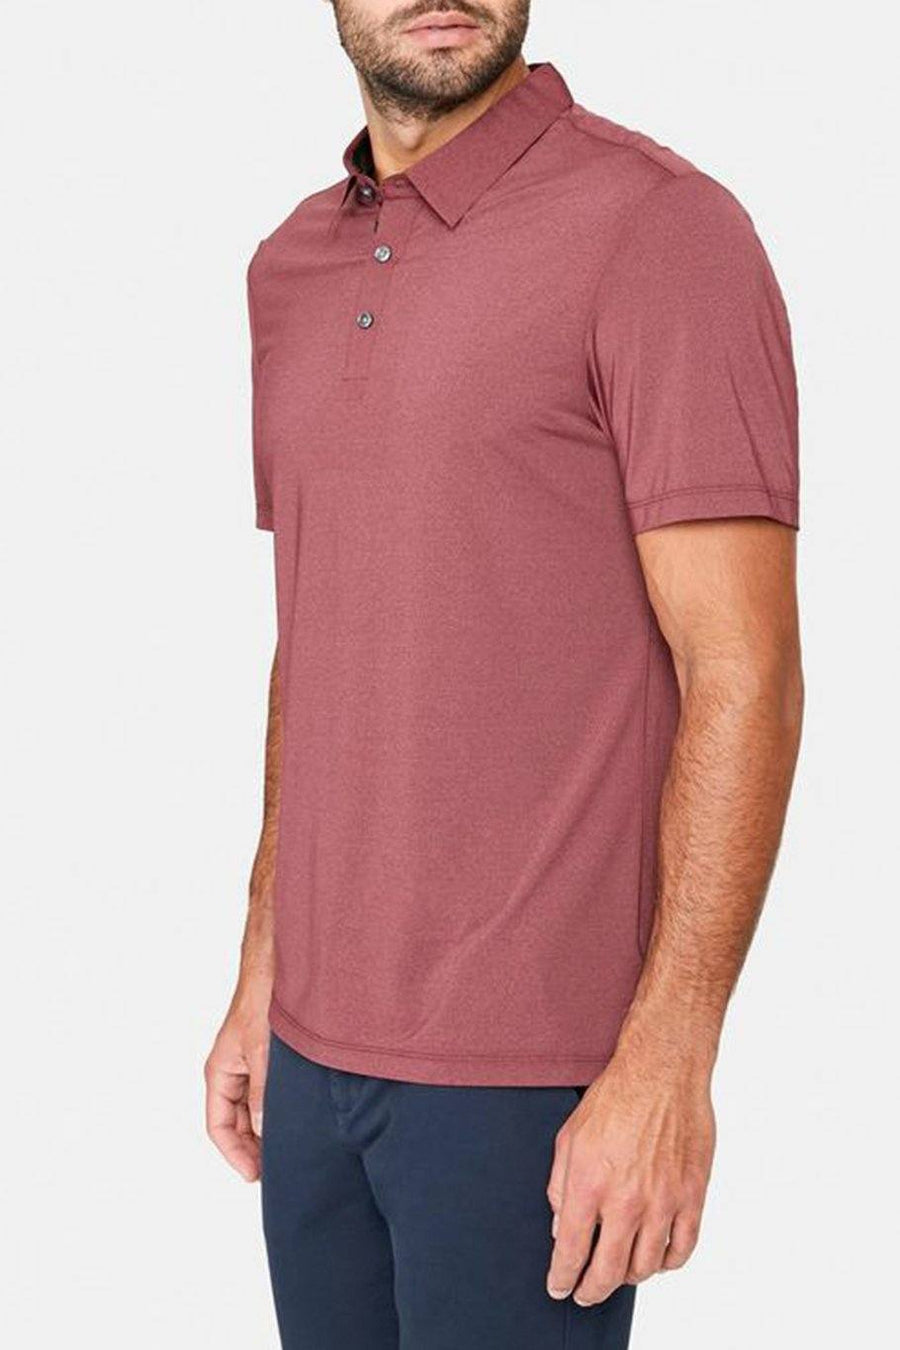 Albatross Seamless Performance Polo - Red - Shore